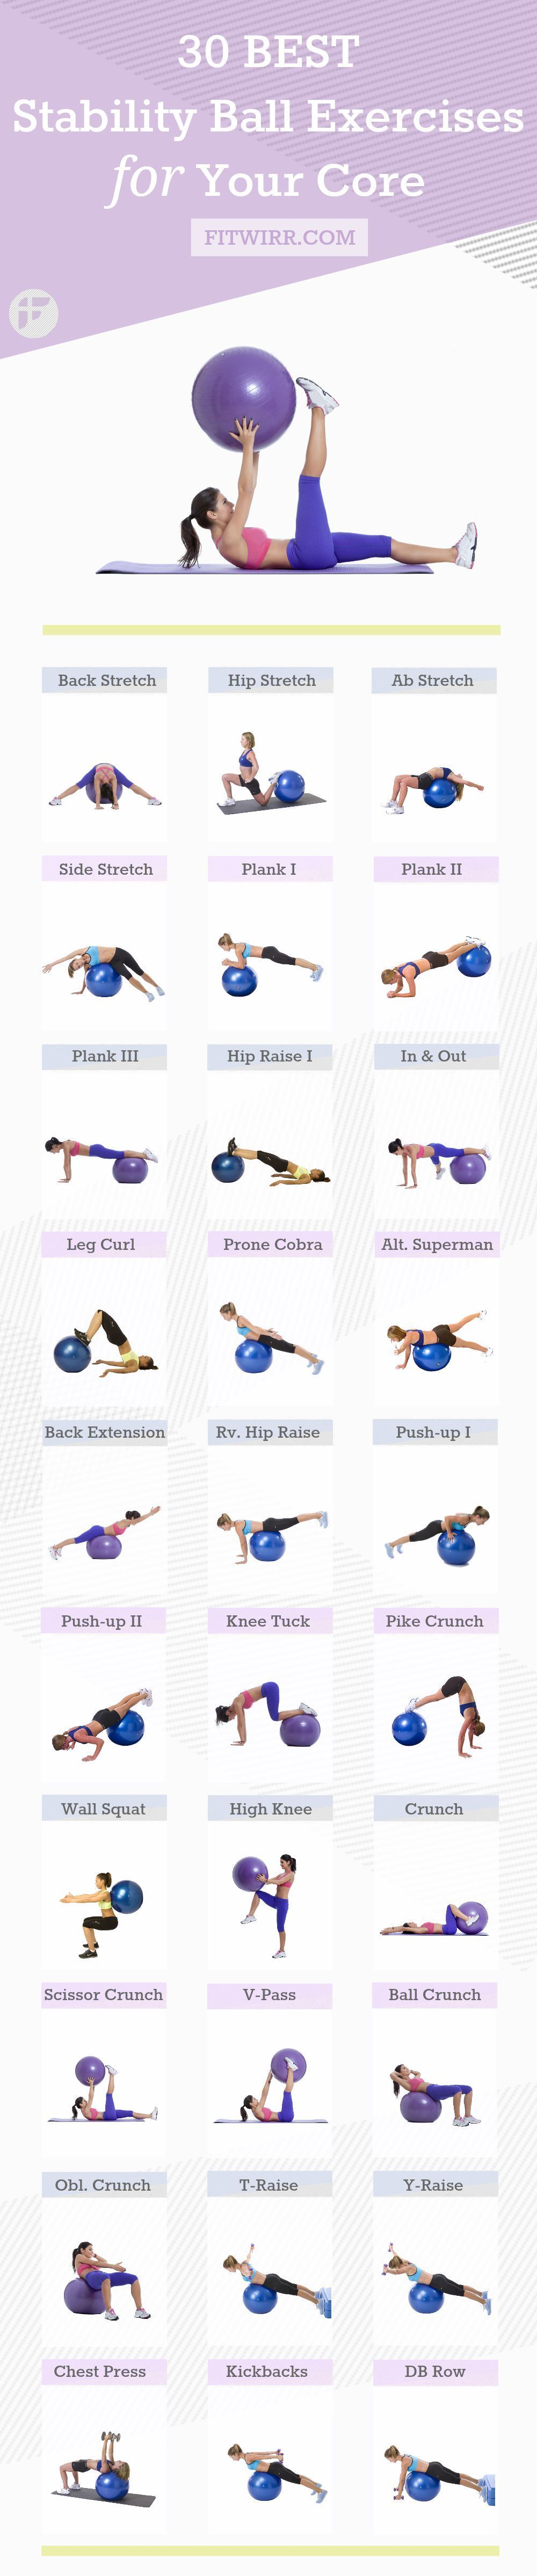 30 Best Stability Ball Exercises for Beginners 30 best stability ball exercises to improve your core strength, balance, flexibility and overall fitness. #fitnessexercises